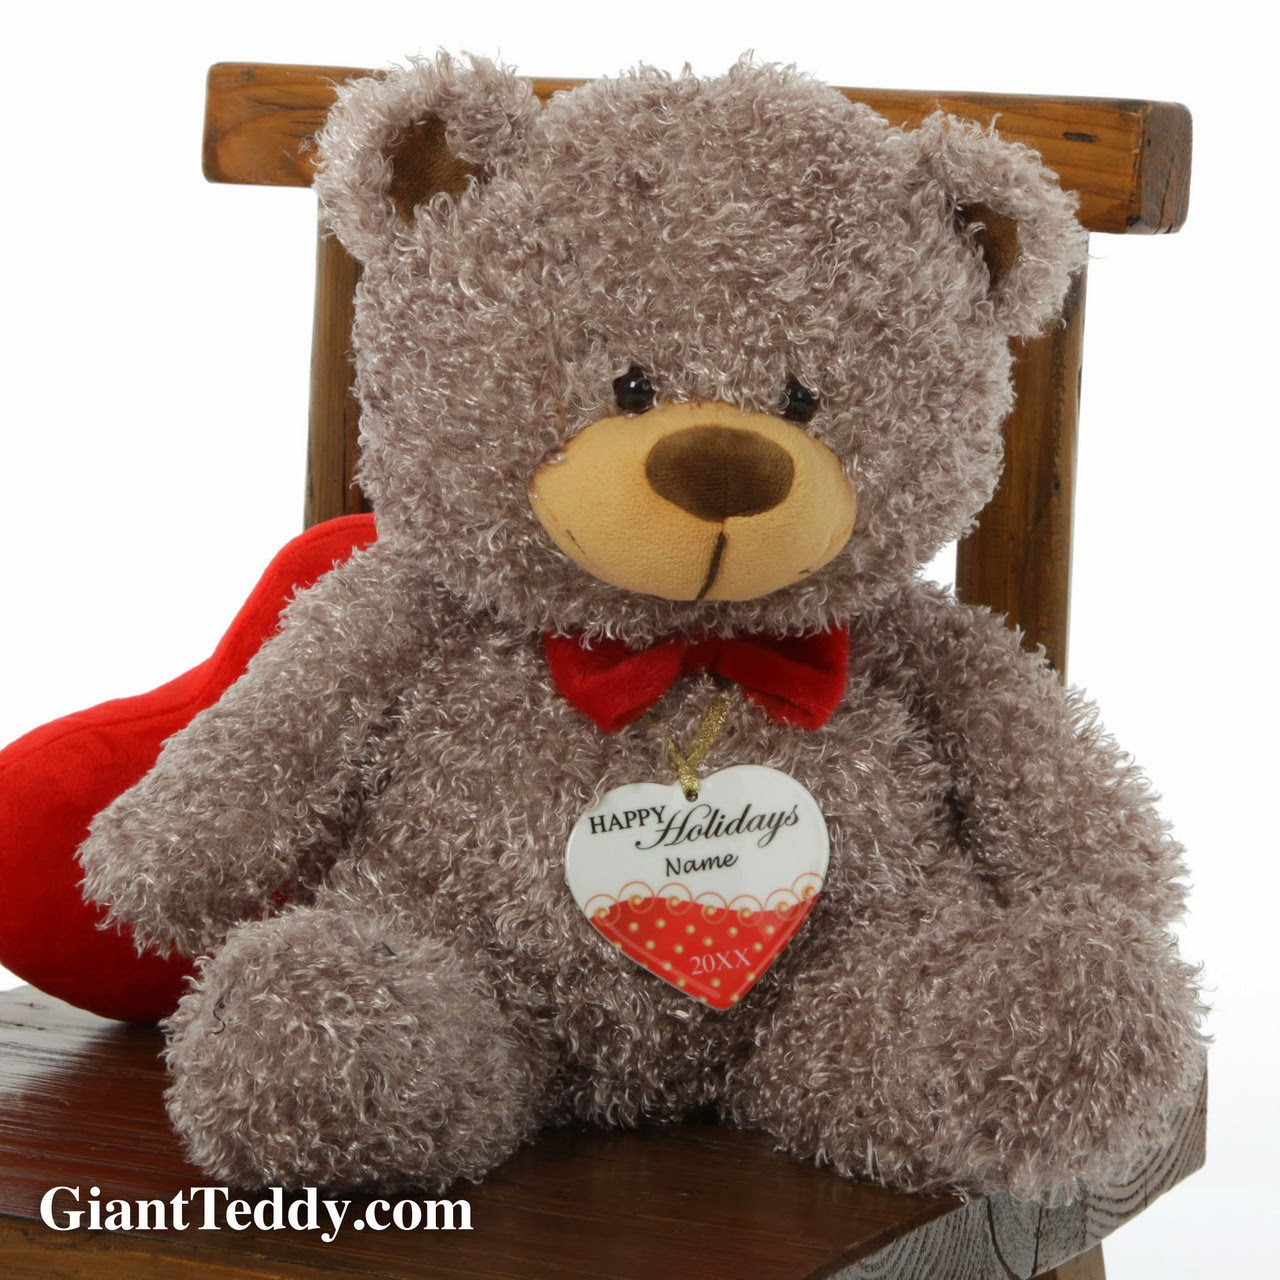 Personalized name ornaments - Giant Teddy Buster Shags Personalized Ornament Gift Set